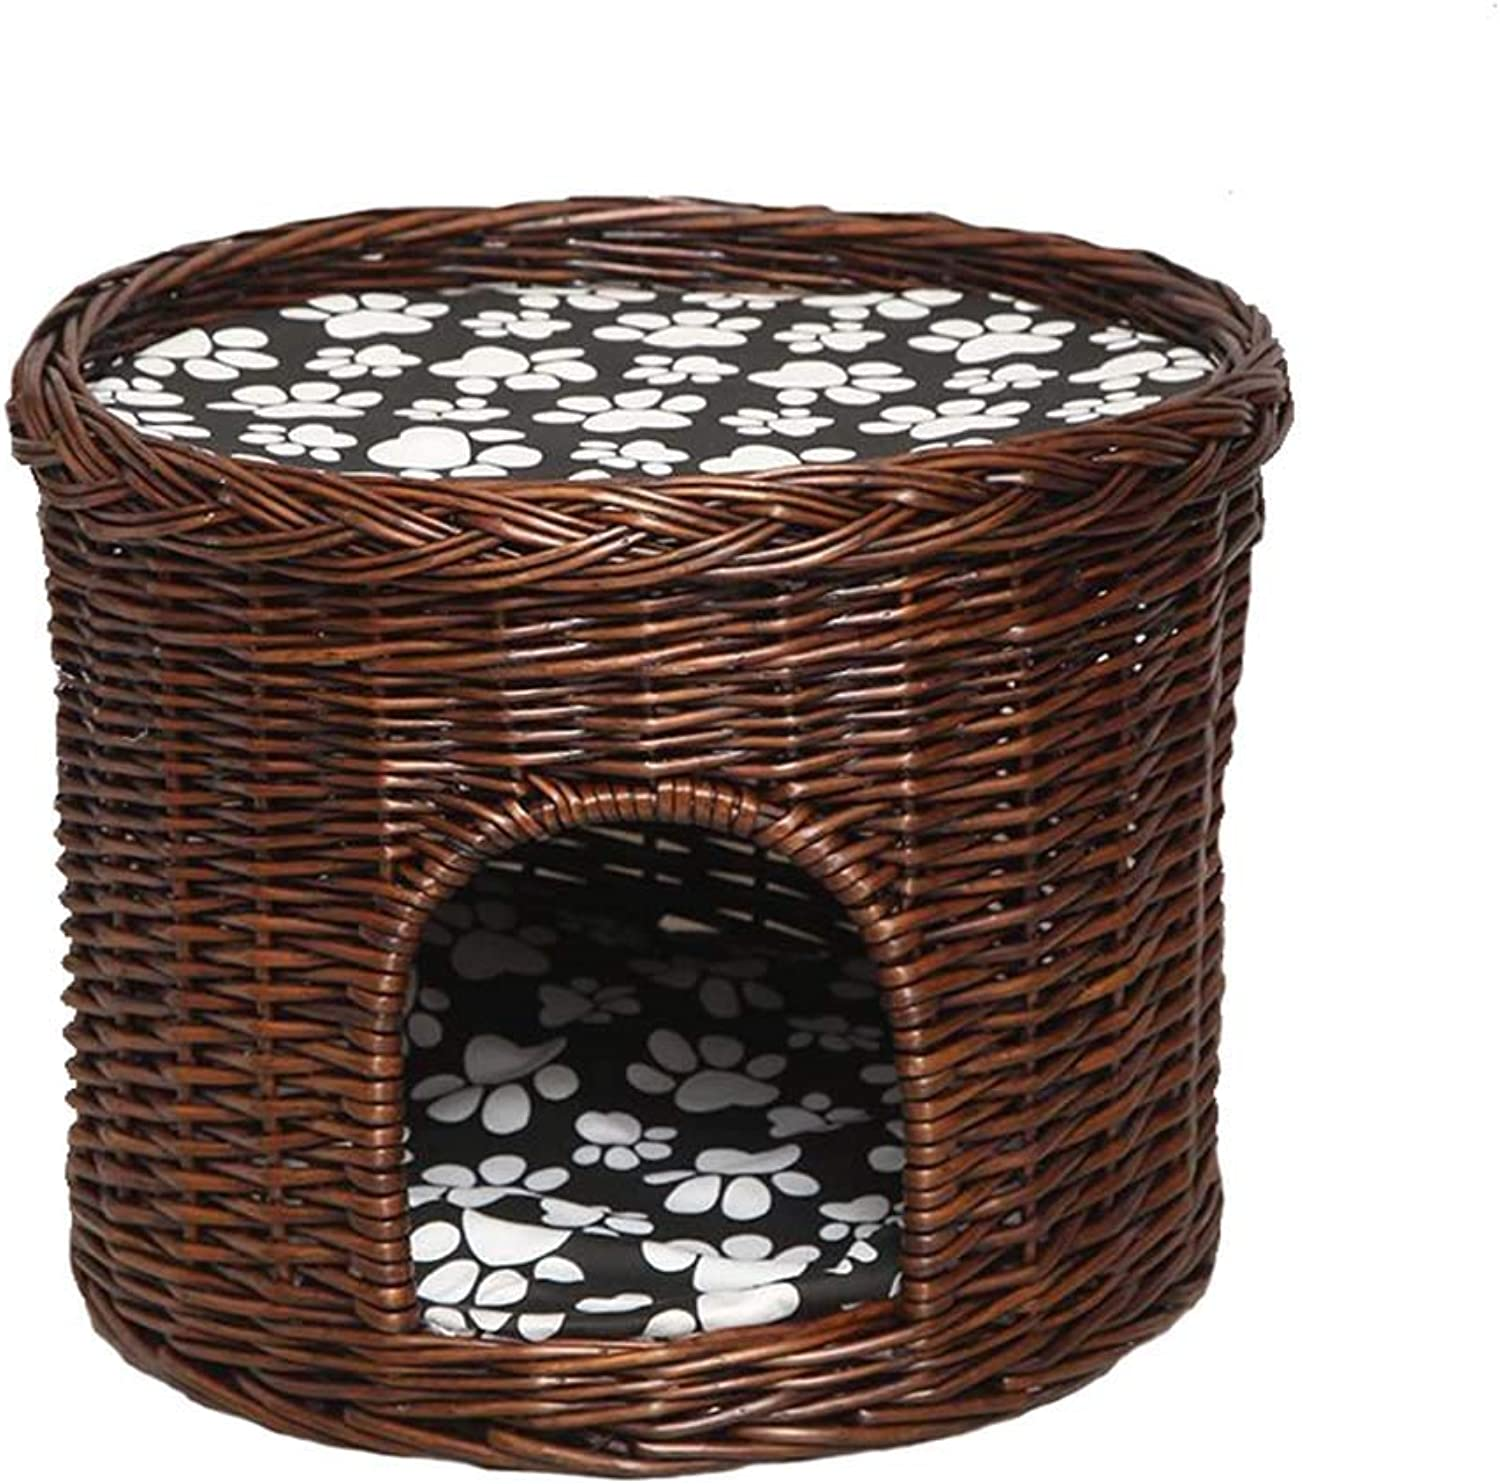 2 Apartment, Multilayer Prepared Rattan Resistant Wear